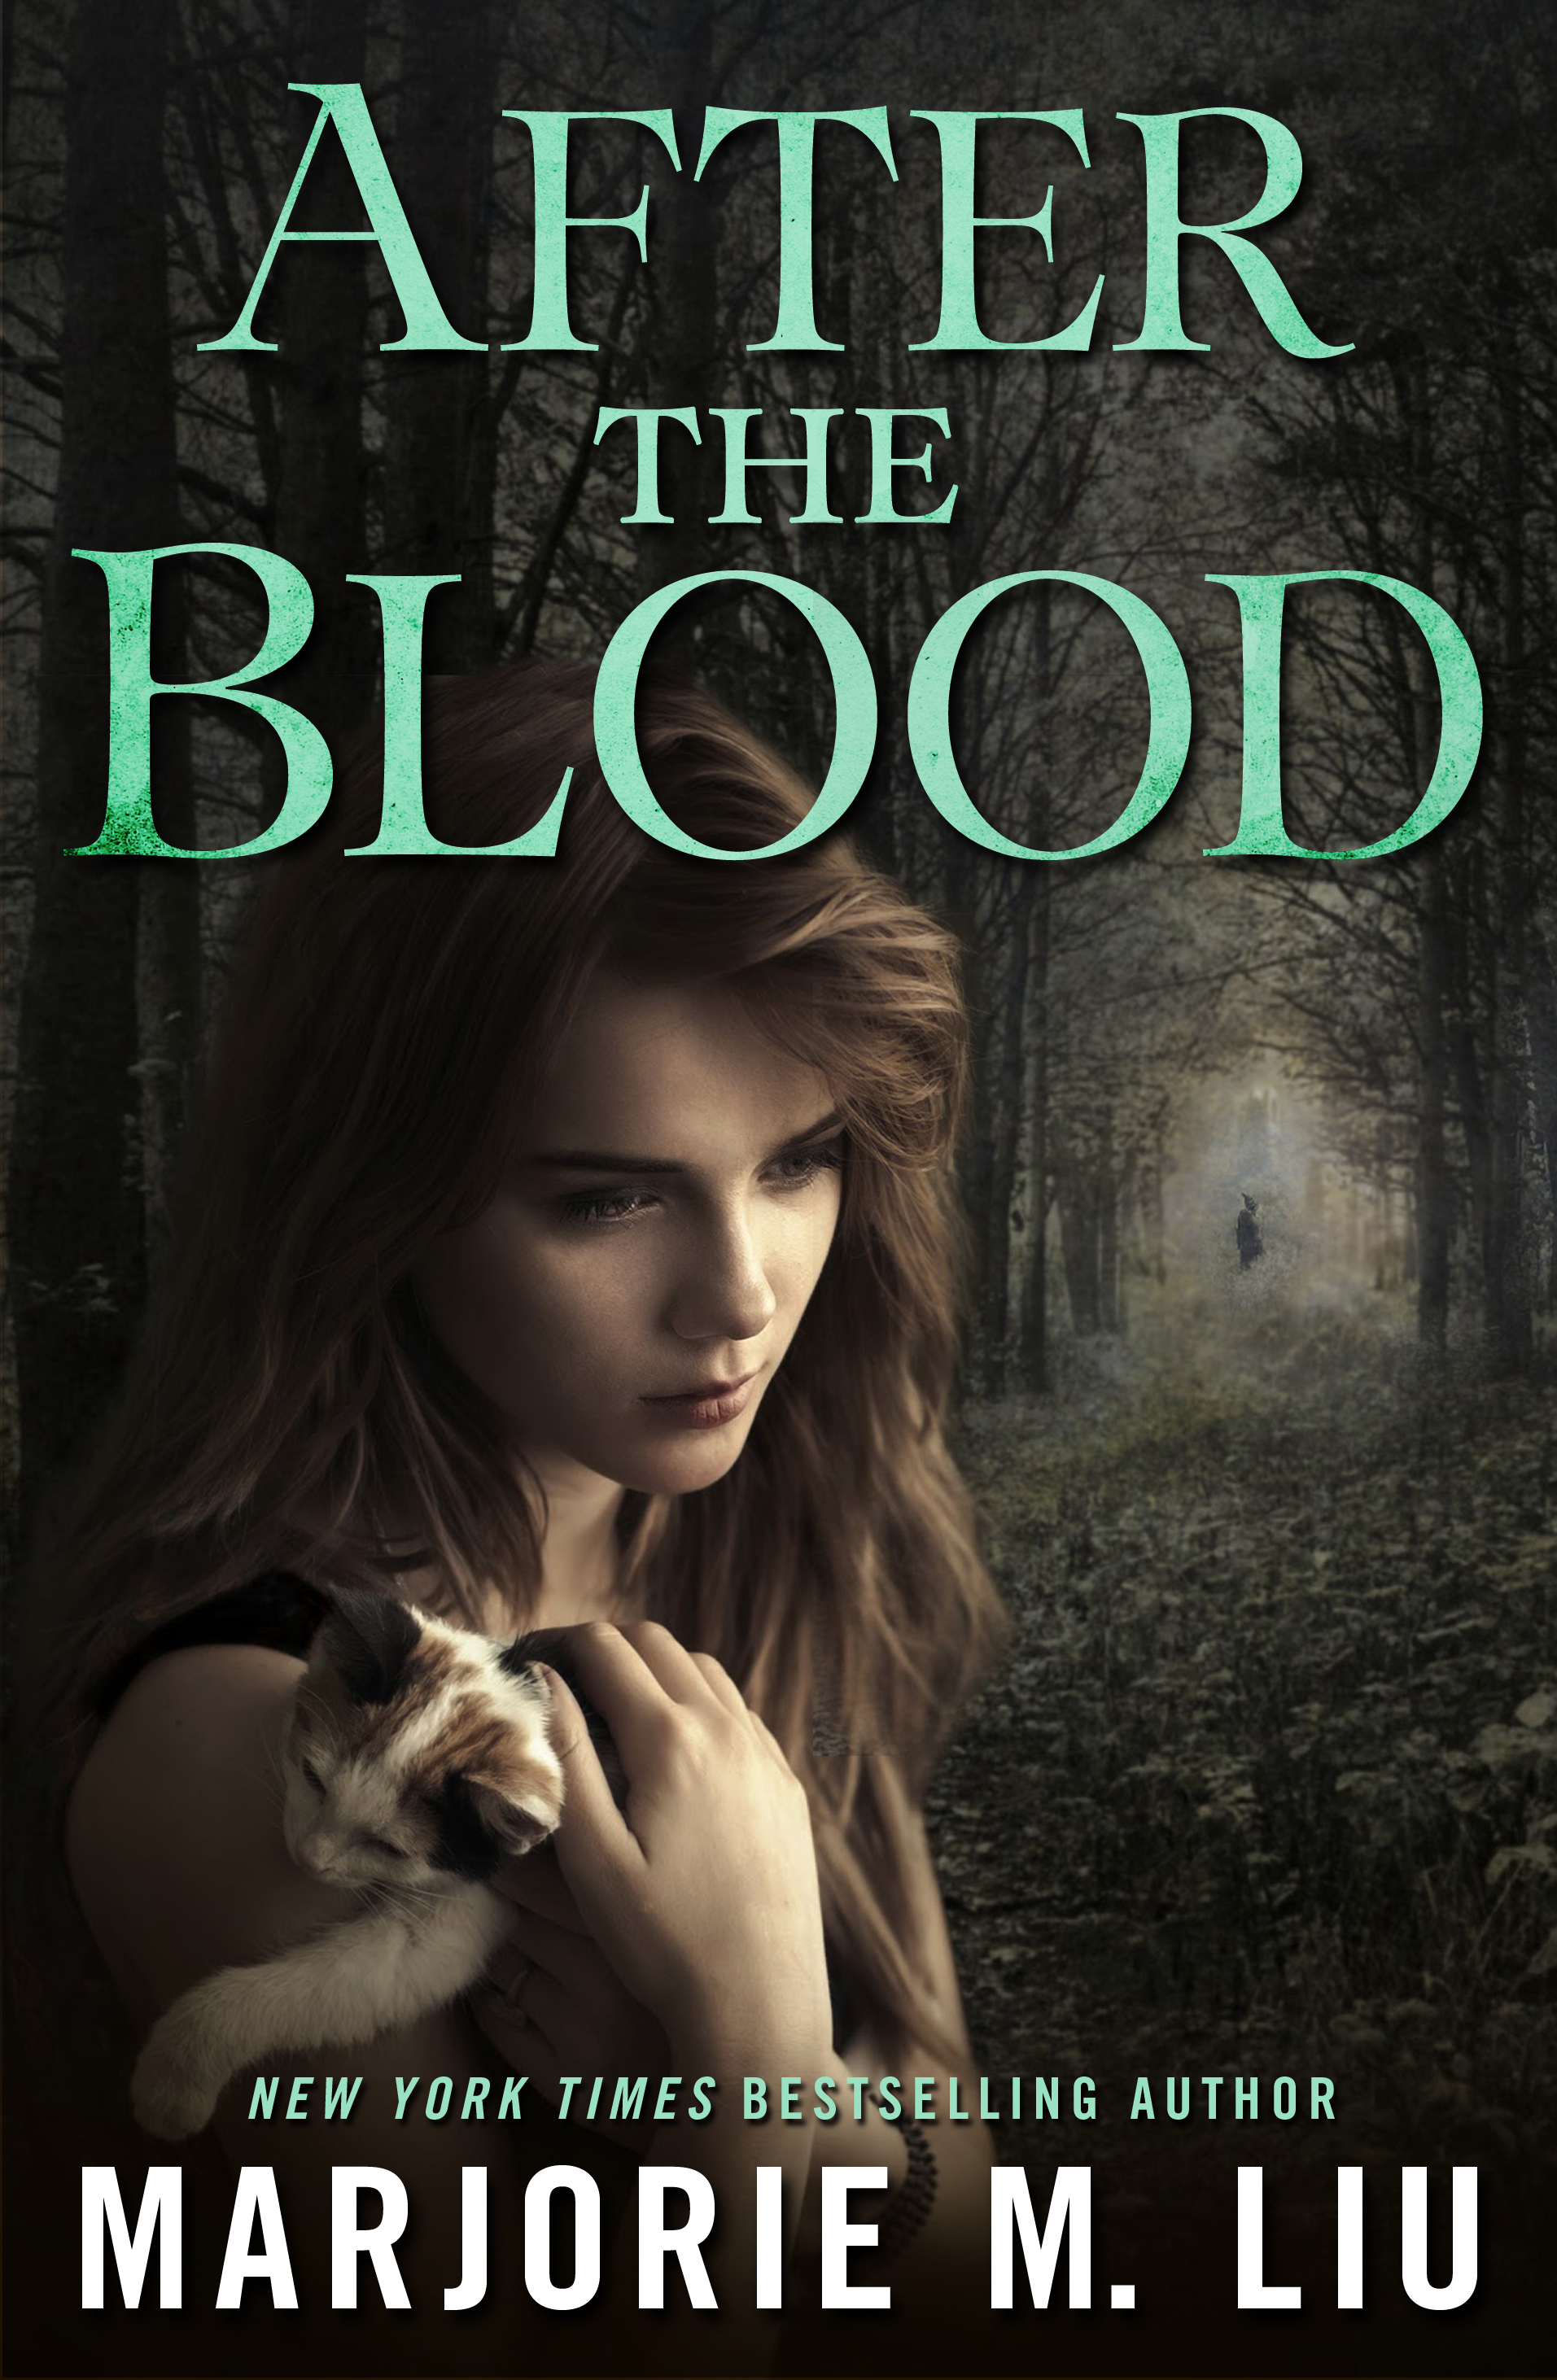 After the Blood by Marjorie Liu